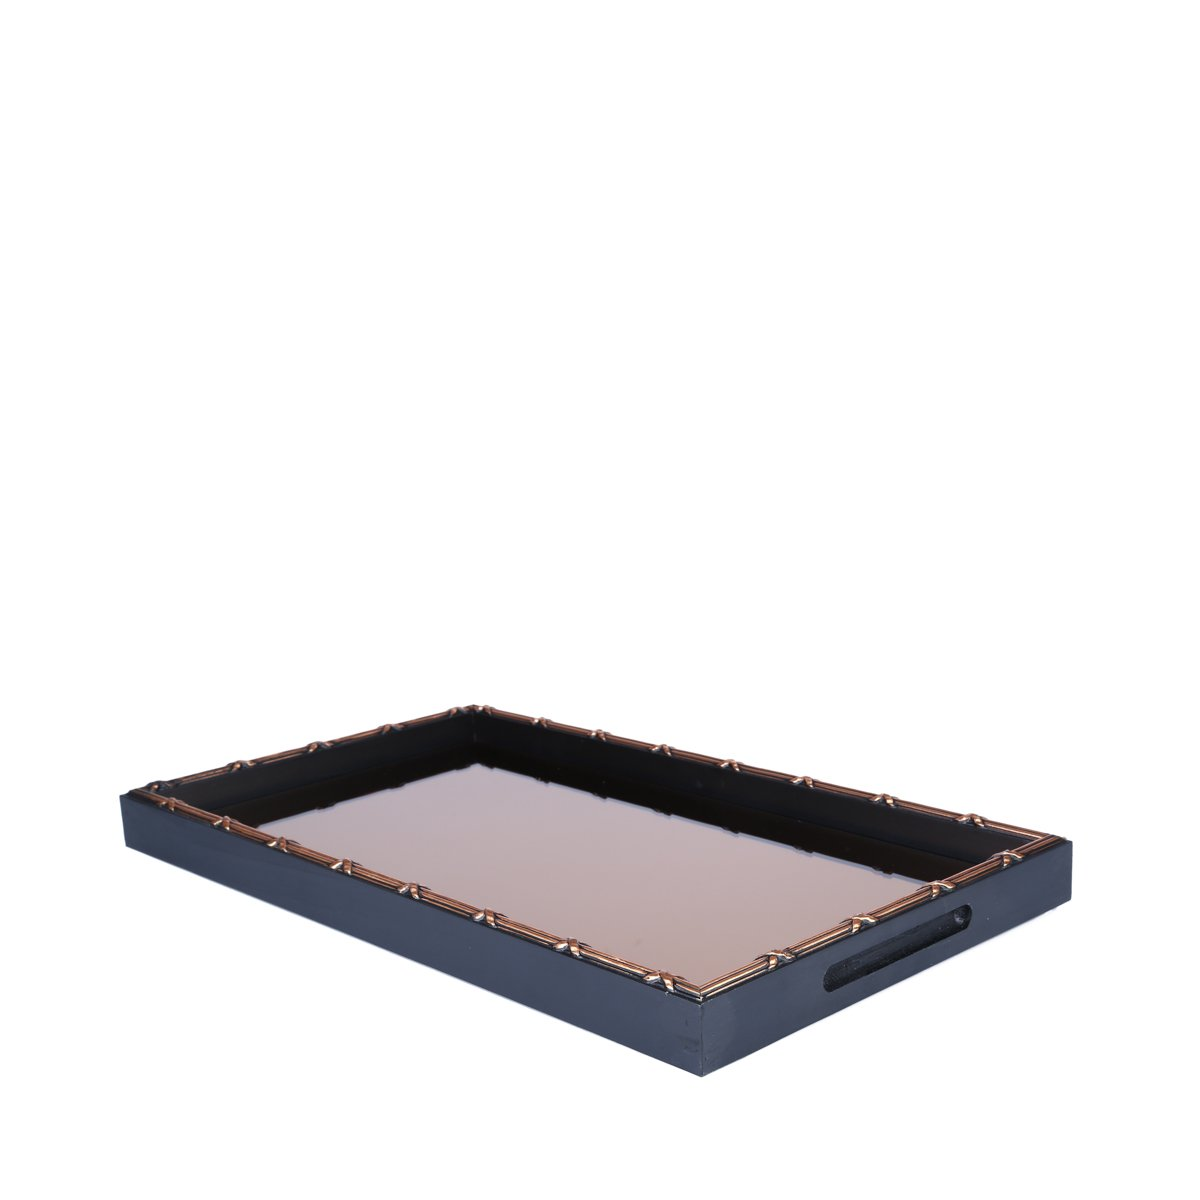 Woodart Croisé Wooden Serving Tray with Handles (Brown, 19x11) by Wood Art (Image #2)